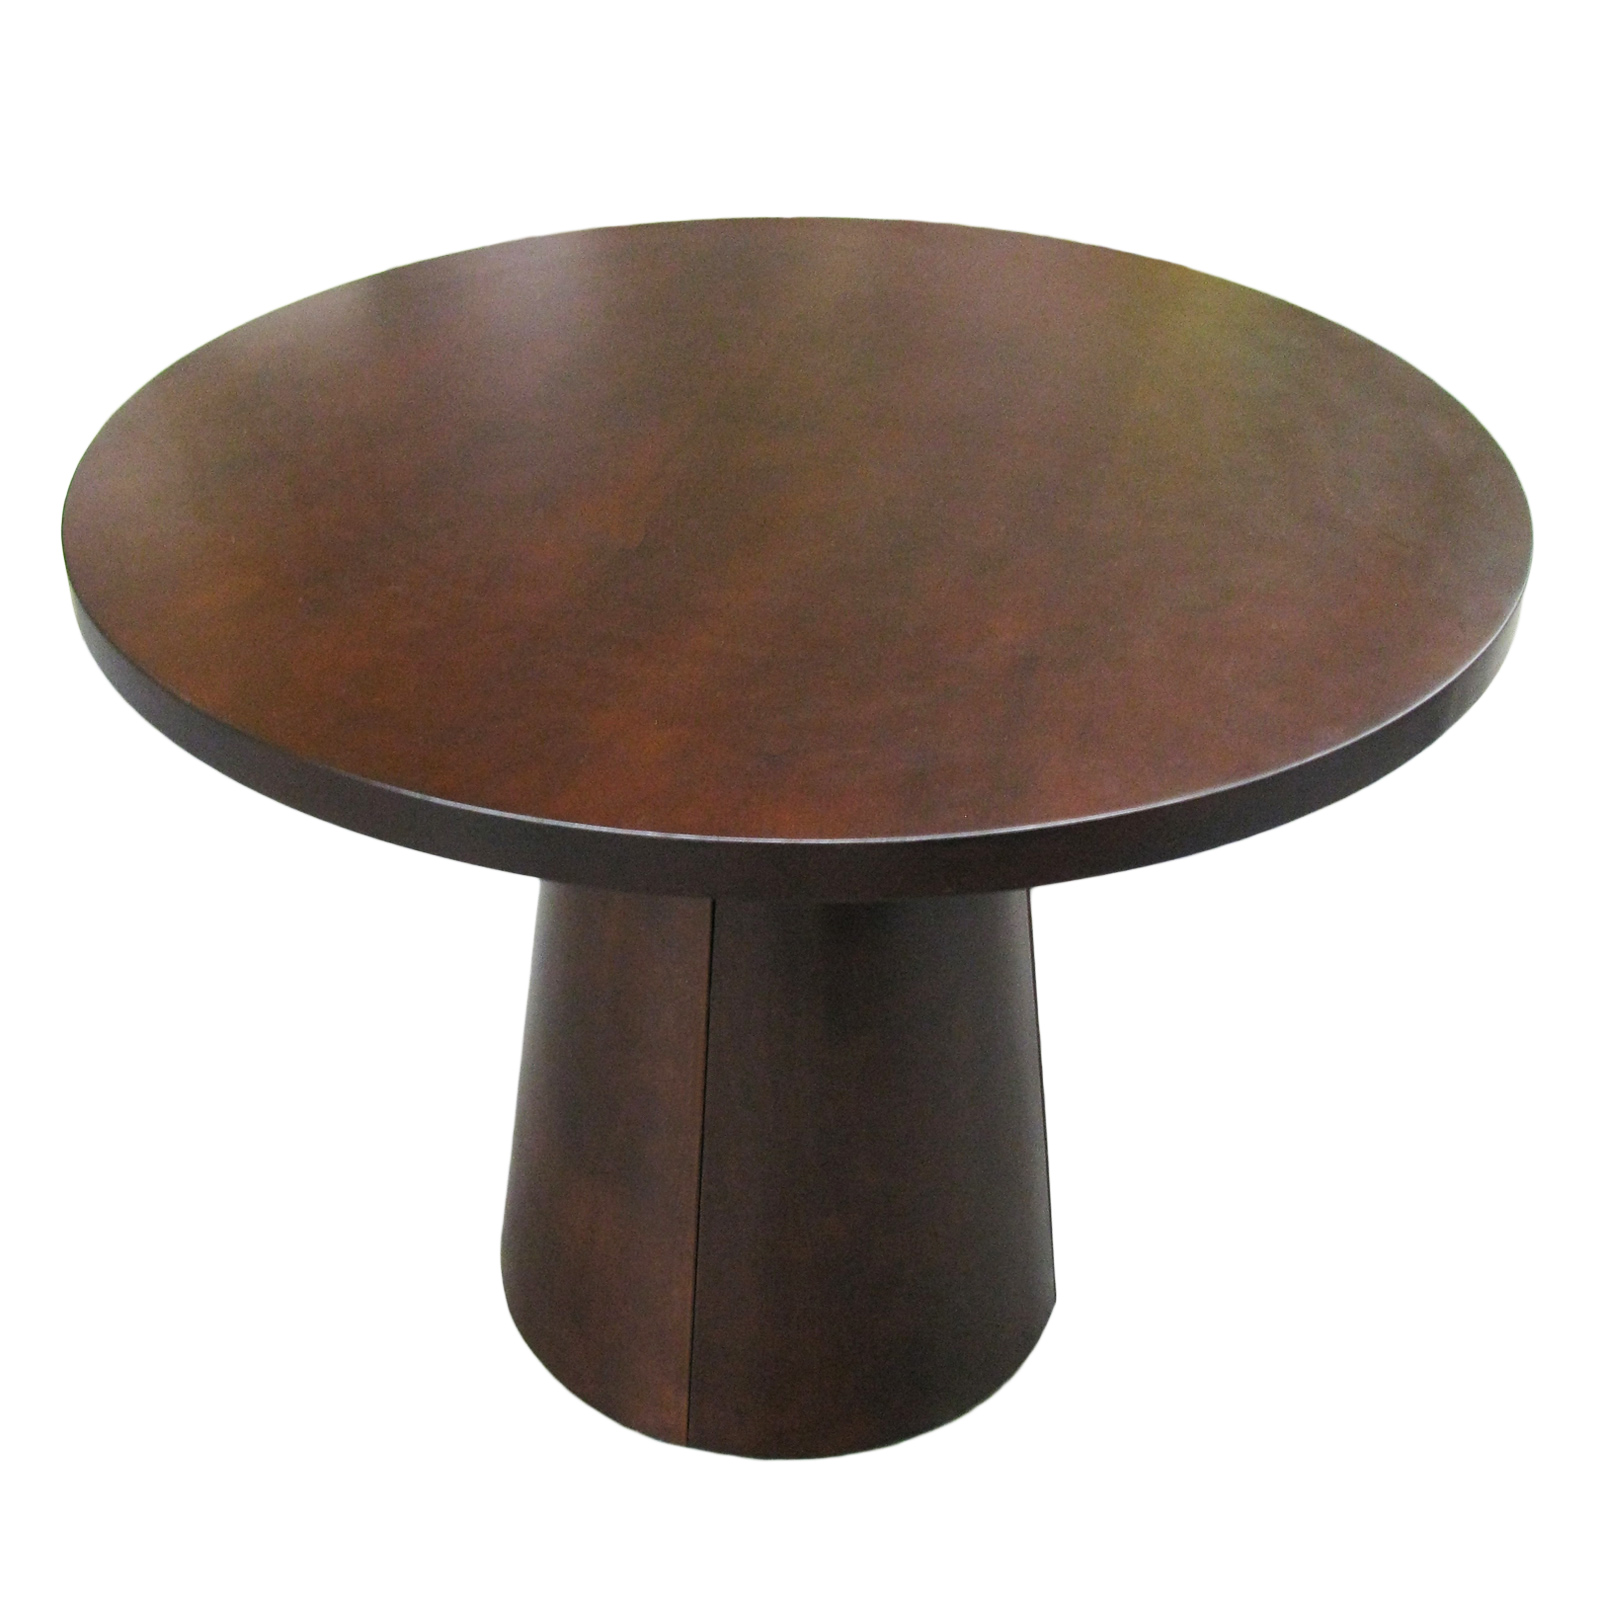 Ottago Brown Walnut Wooden Round Quality Kitchen Dining Room Table RRP